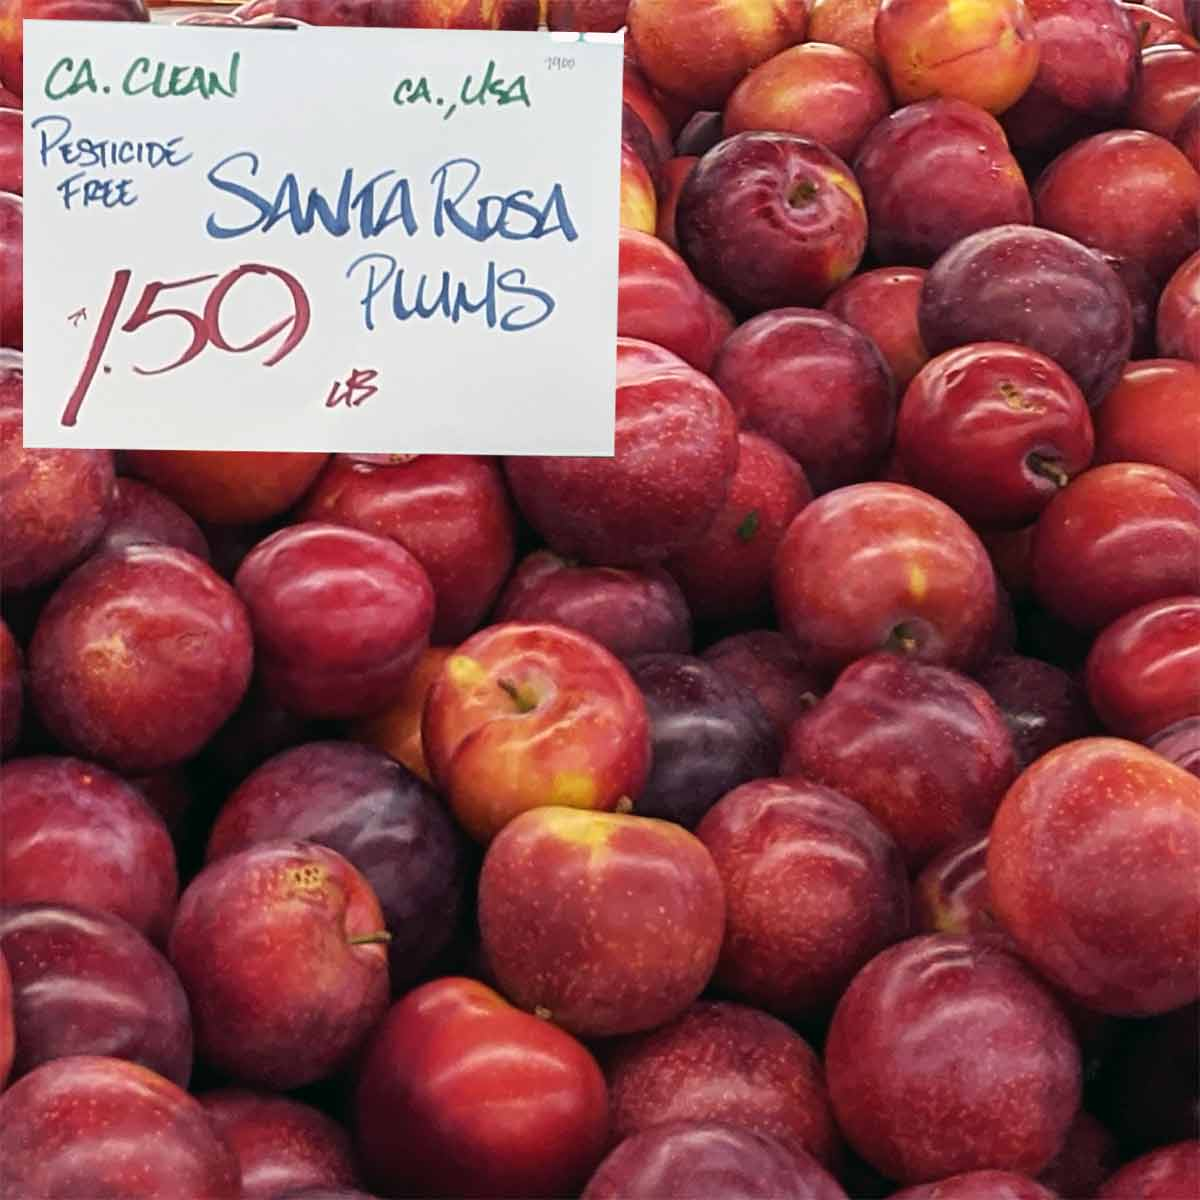 santa rosa plums - to be used in recipes